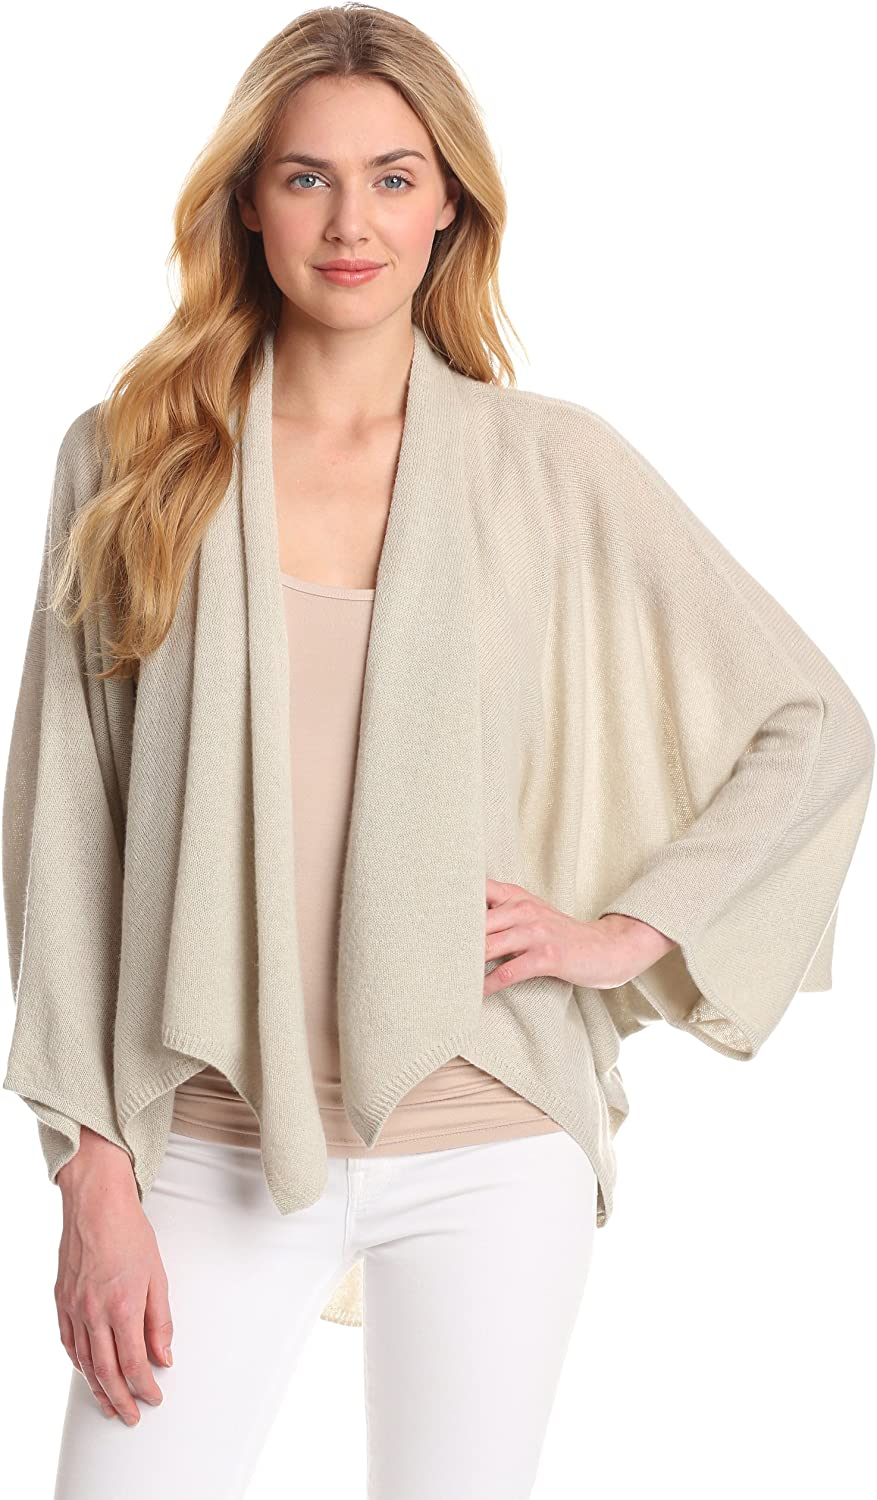 Minnie Rose Women's 100% Cashmere Cocoon Cardigan at Amazon